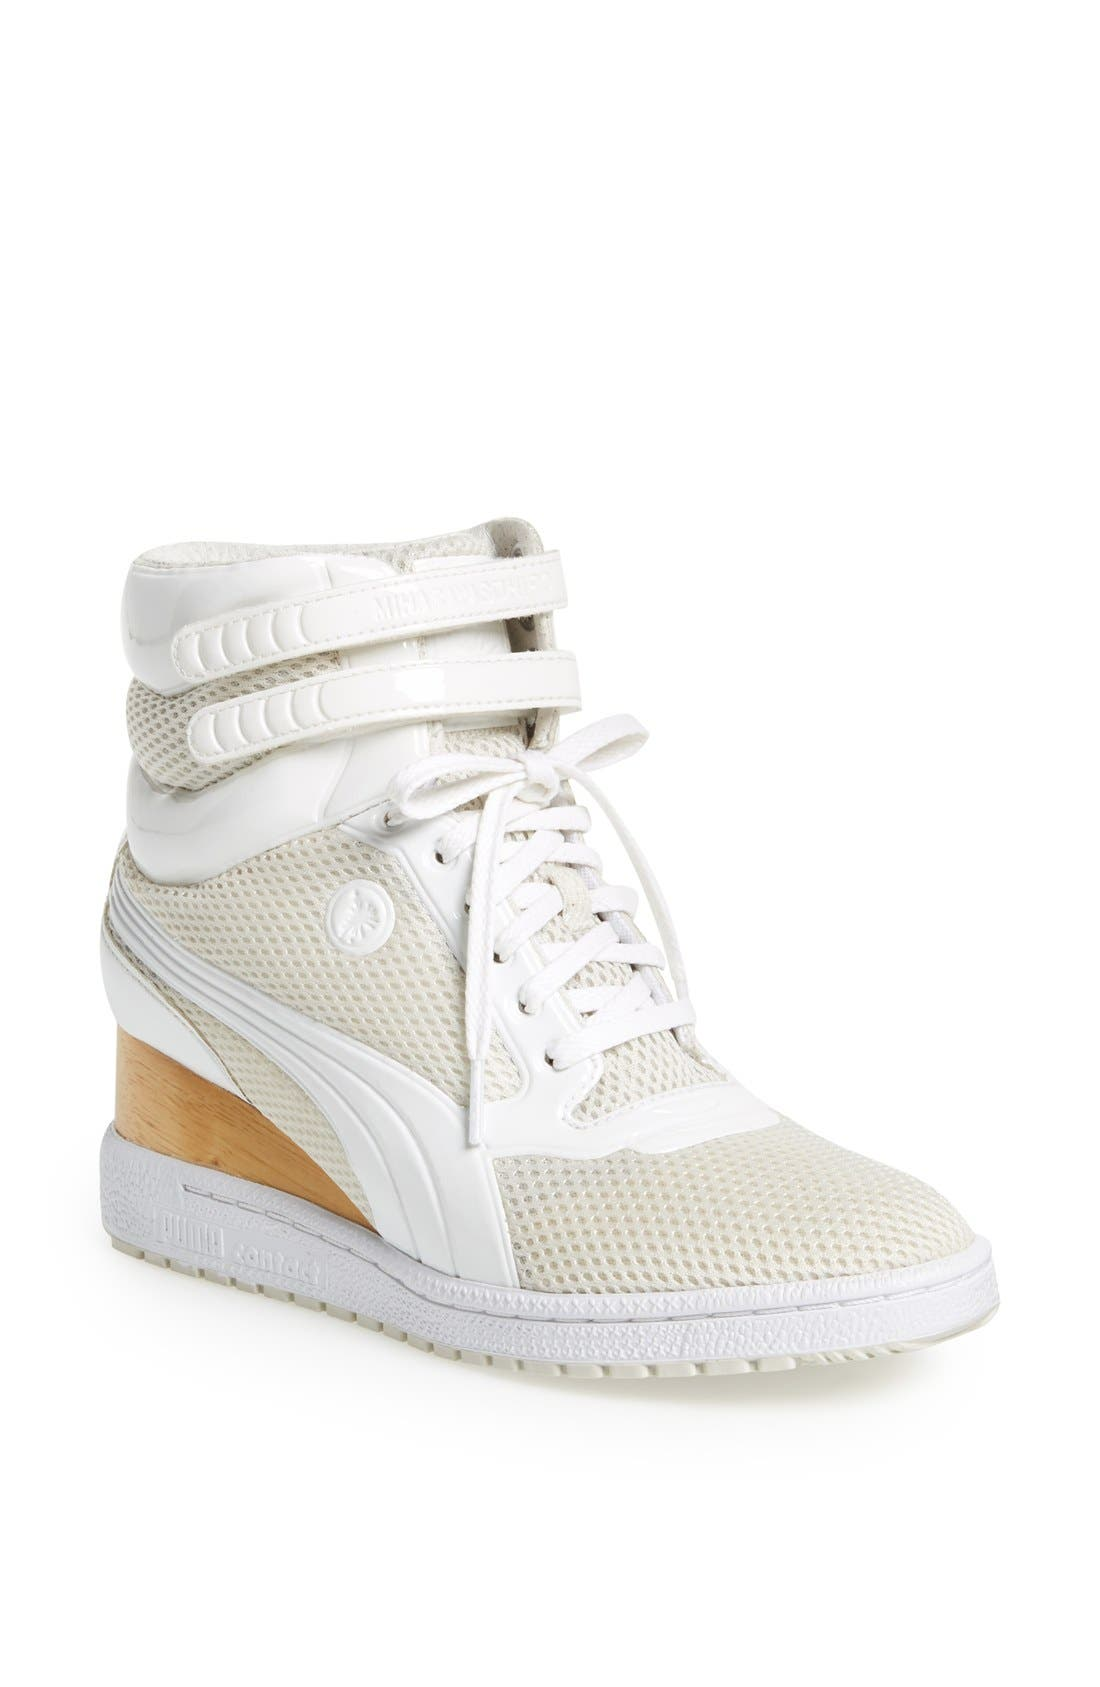 Alternate Image 1 Selected - PUMA 'My 77' Sneaker (Women)